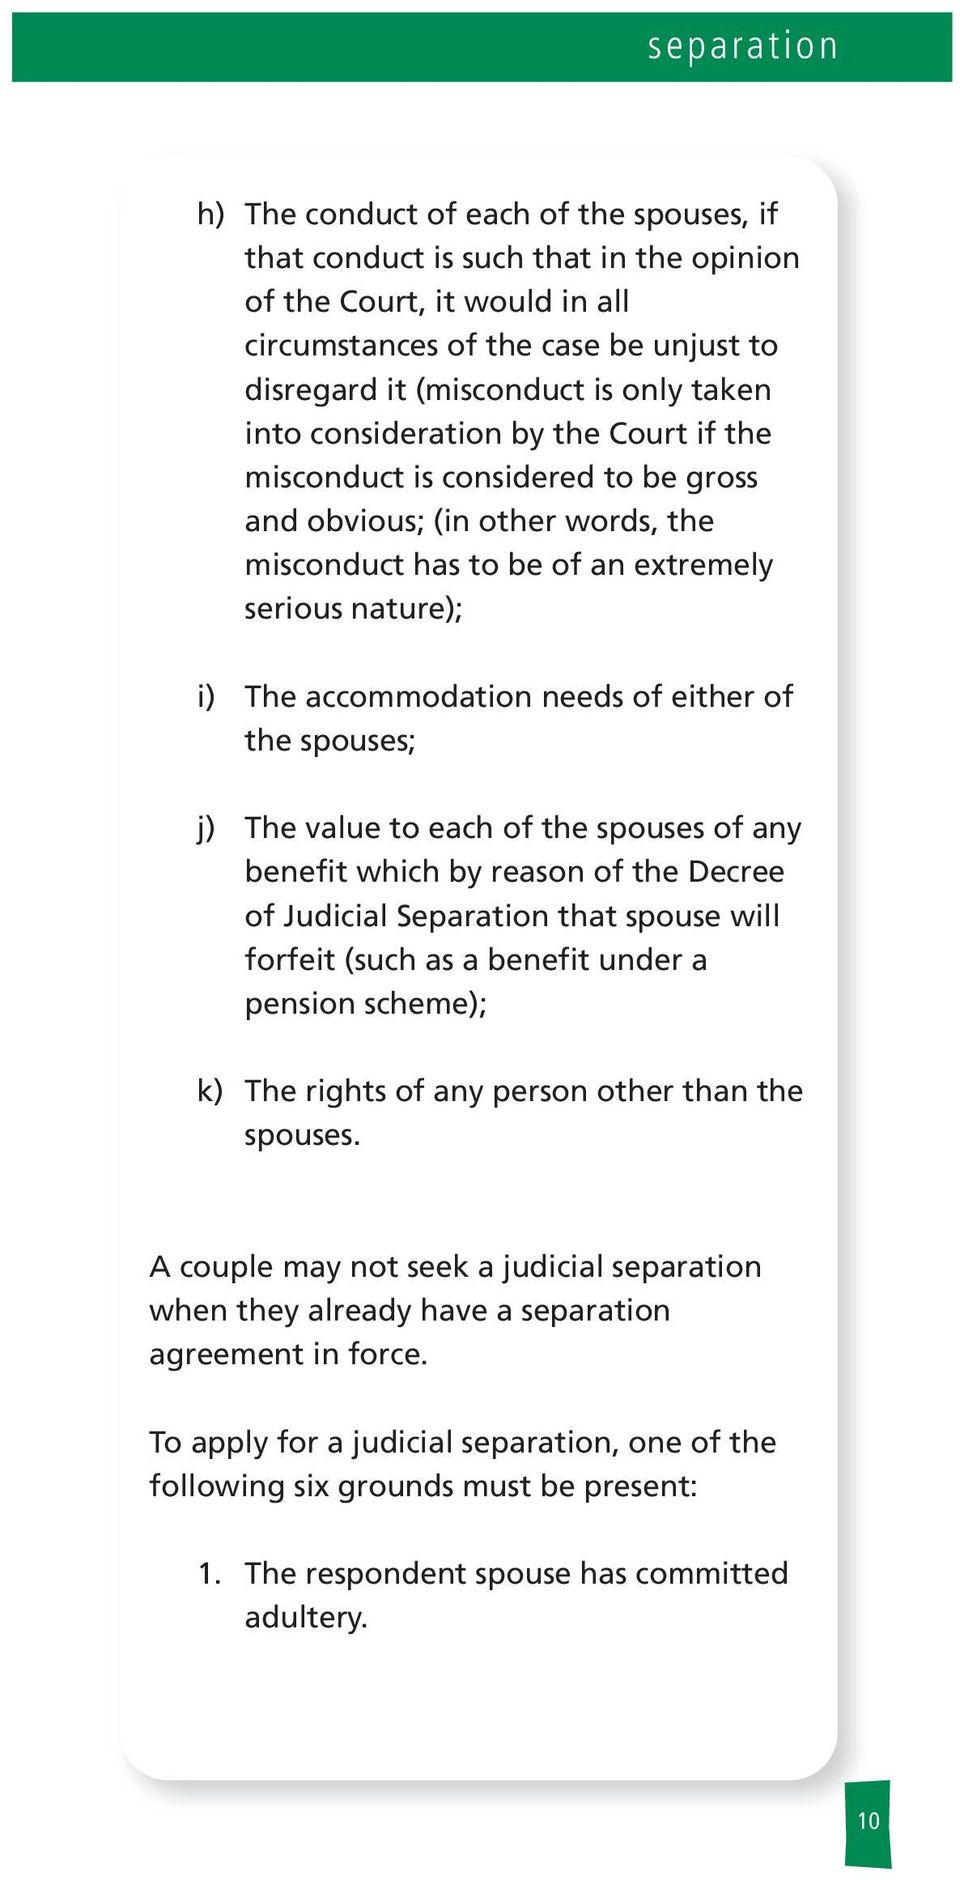 the spouses; j) The vaue to each of the spouses of any benefit which by reason of the Decree of Judicia Separation that spouse wi forfeit (such as a benefit under a pension scheme); k) The rights of